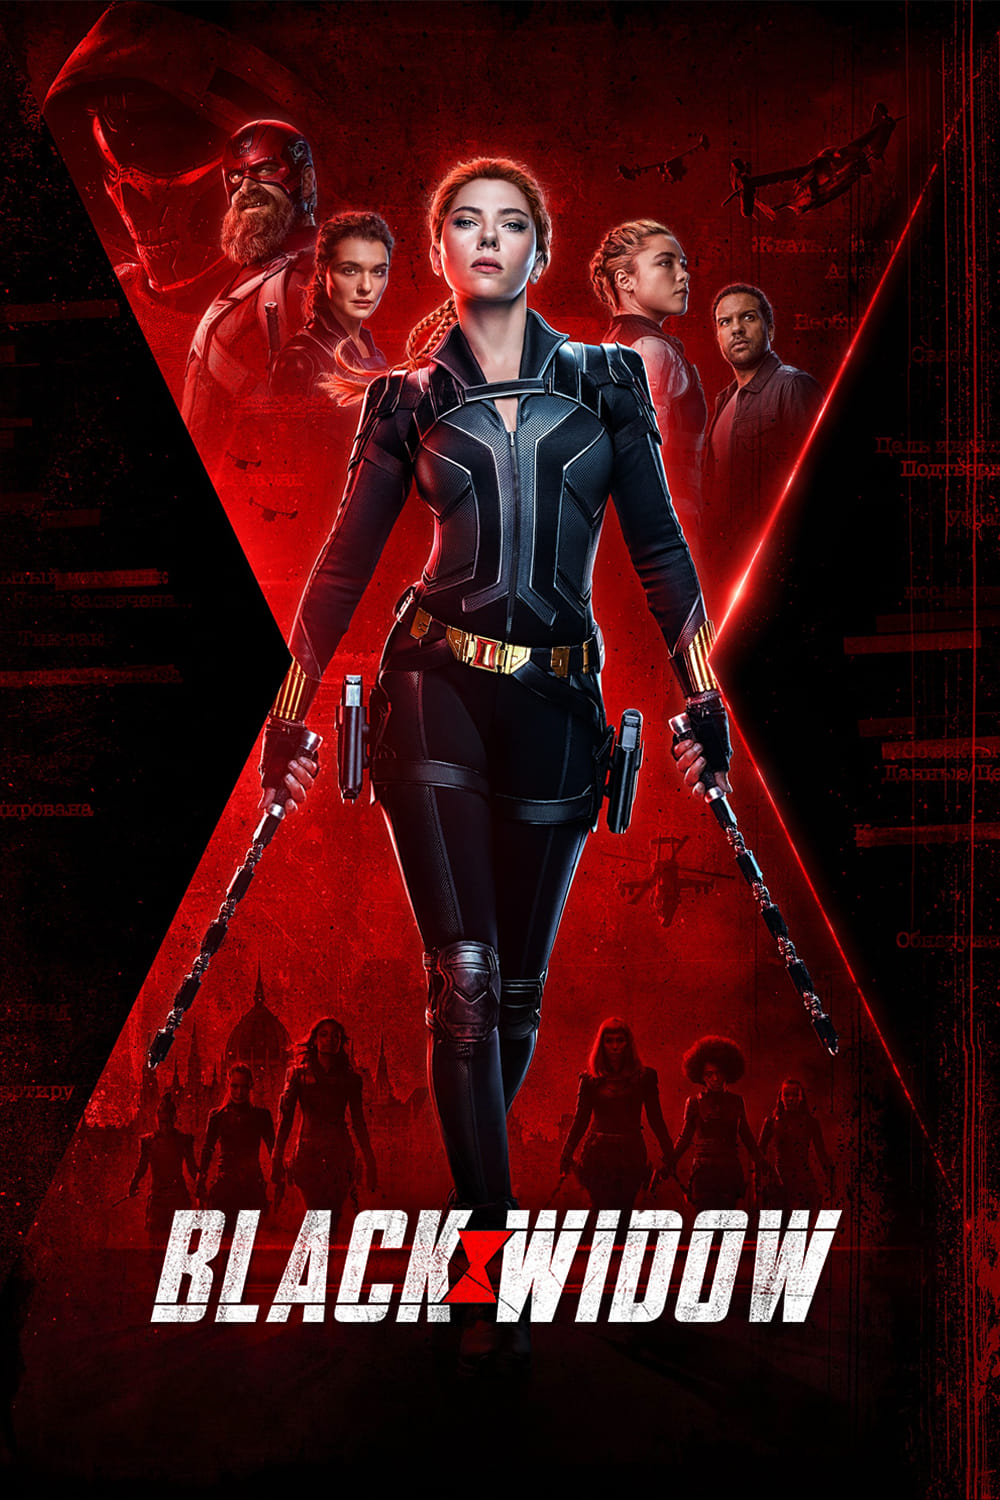 Poster for Black Widow (2021)